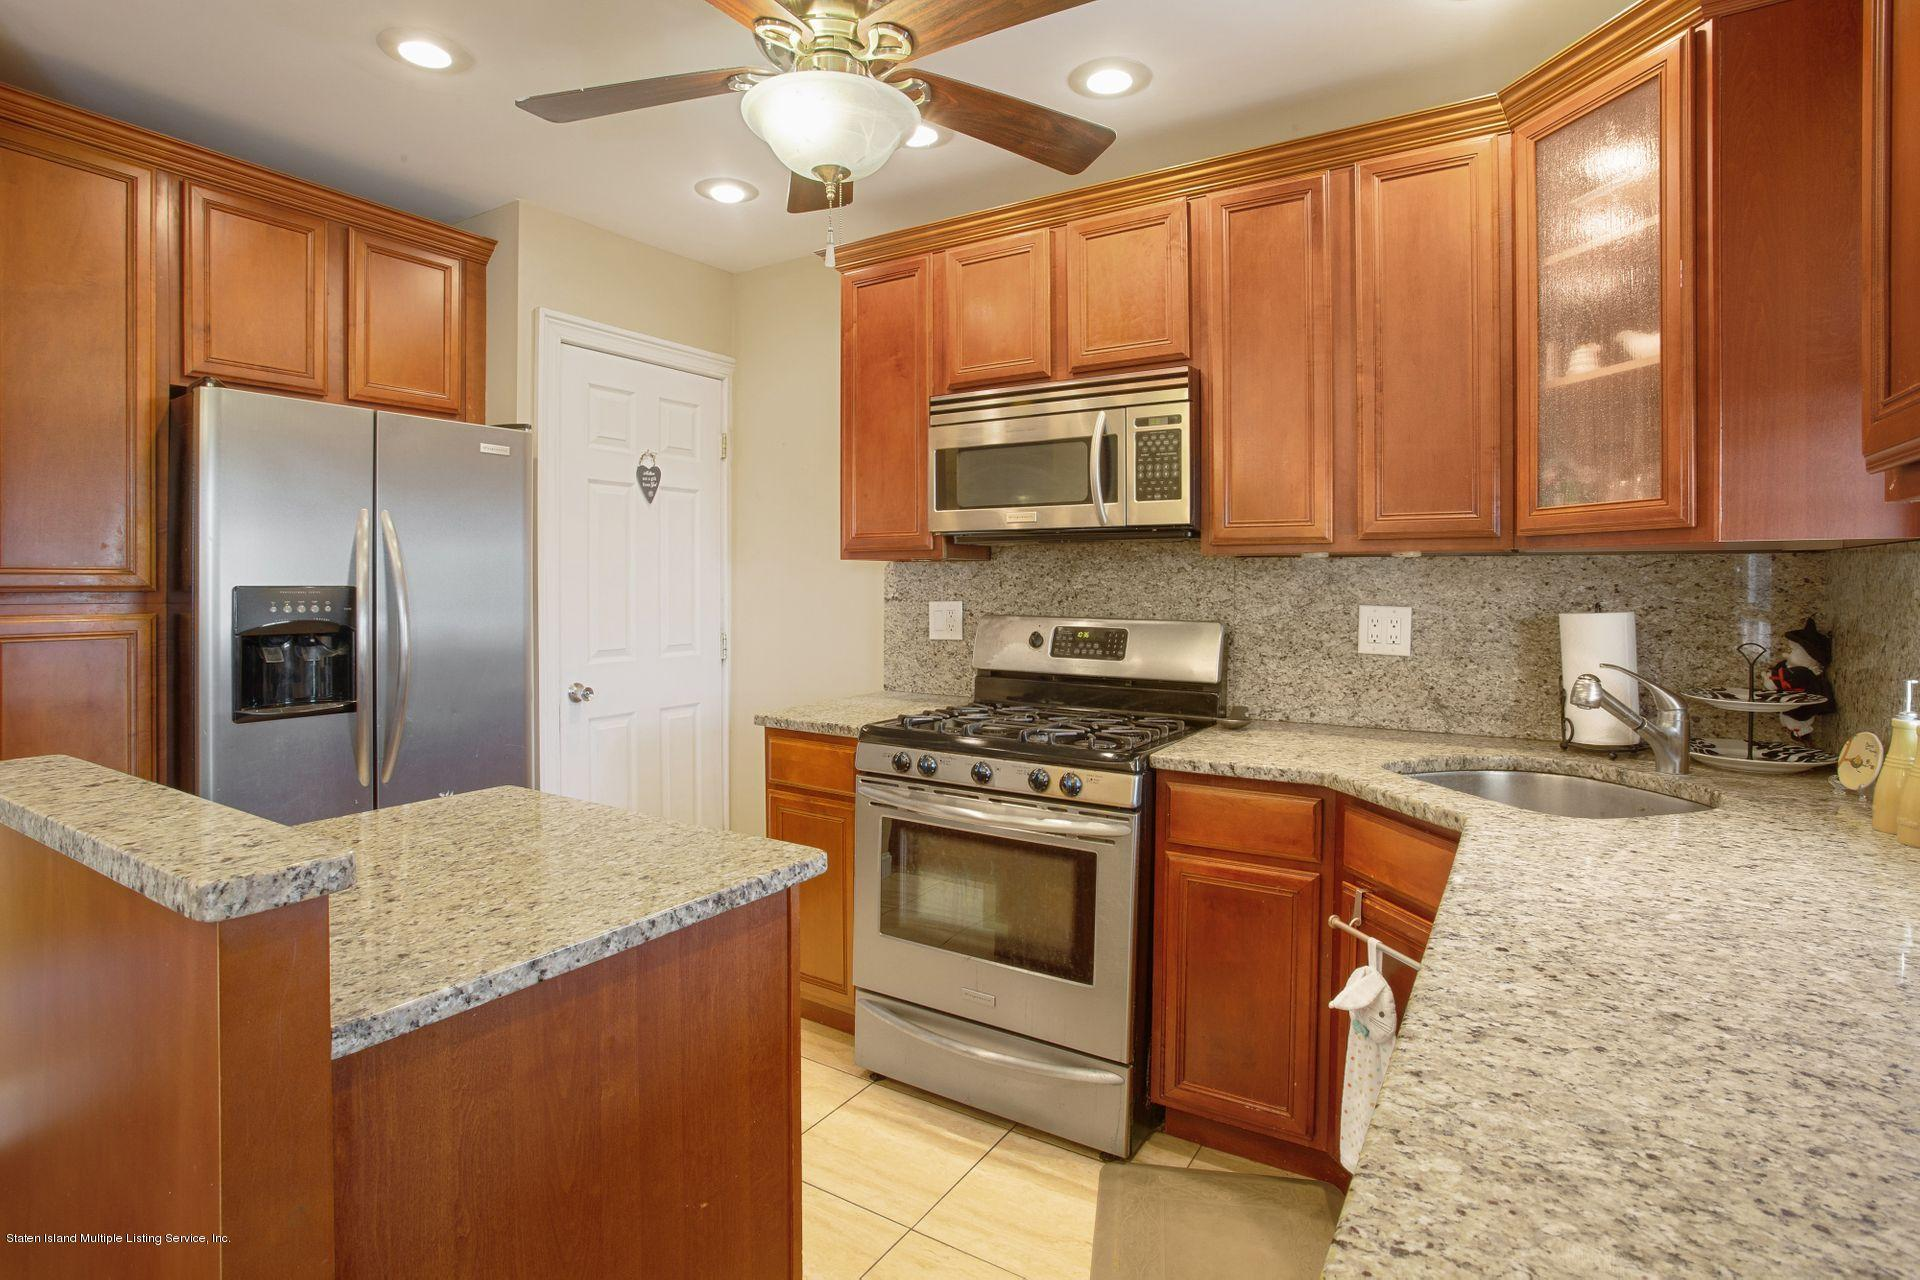 Single Family - Detached 252 Waters Avenue  Staten Island, NY 10314, MLS-1128050-8